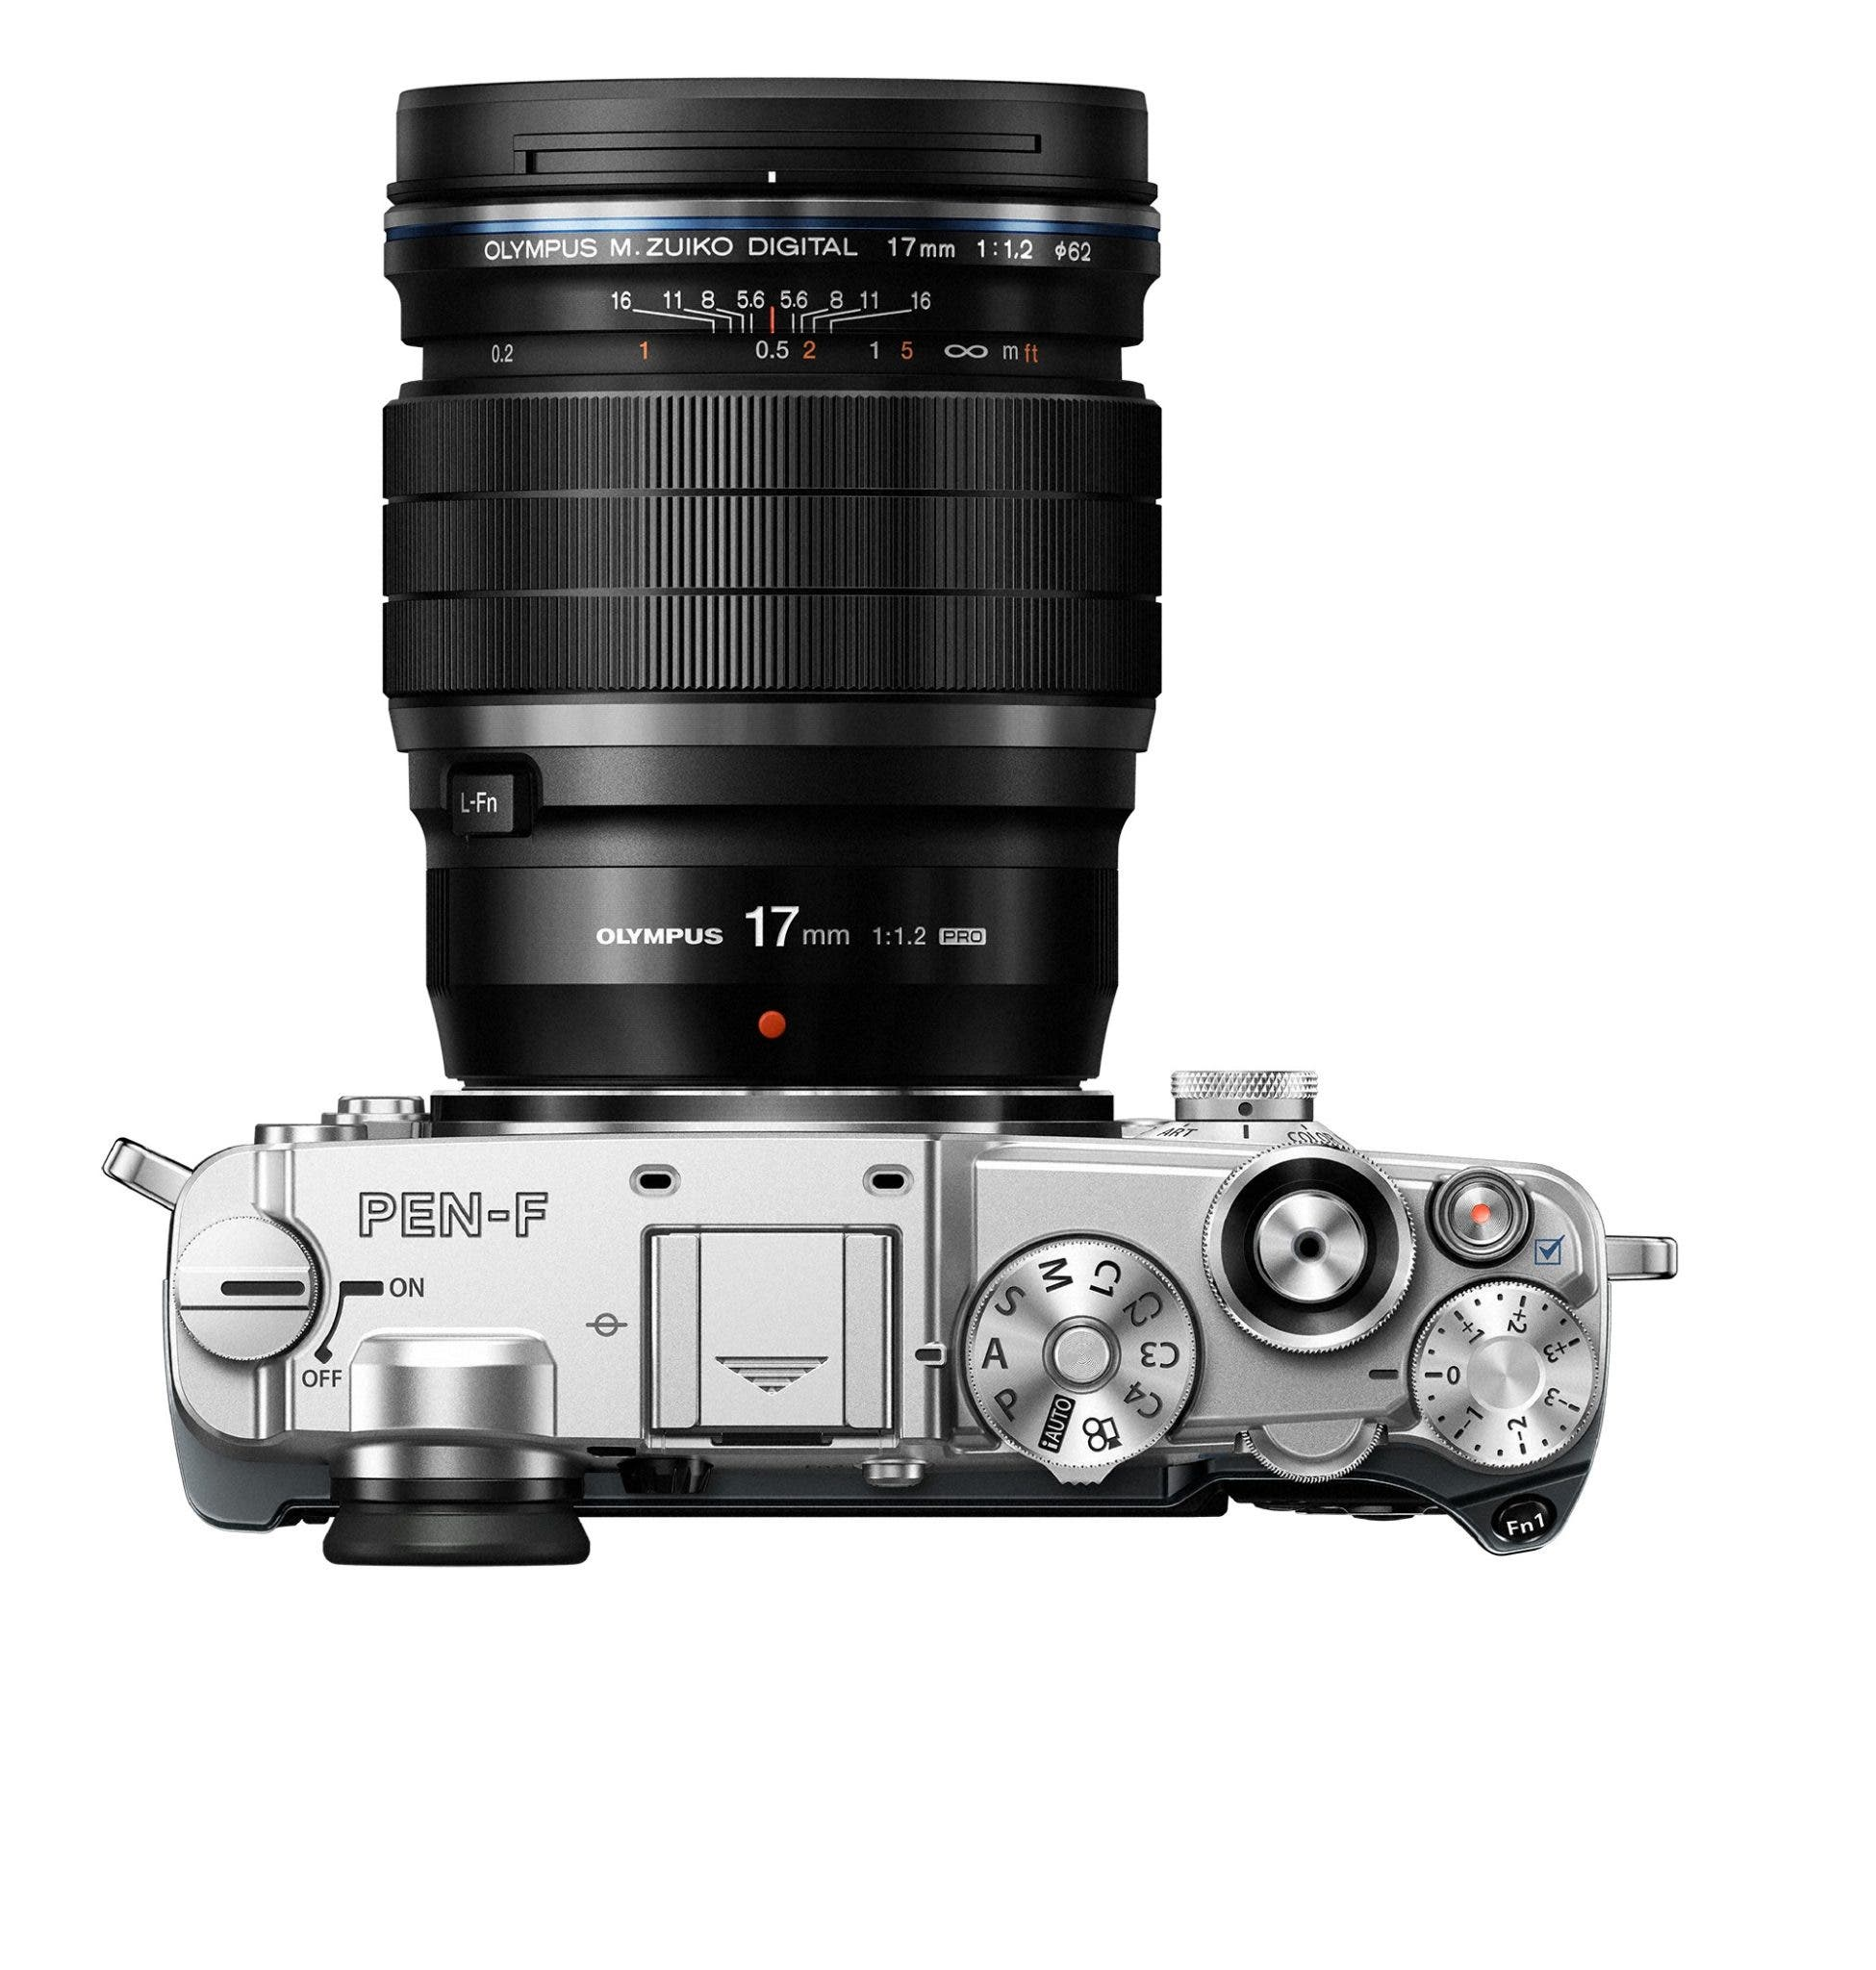 The Olympus 17mm f1.2 and 45mm f1.2 PRO Finally Go Official